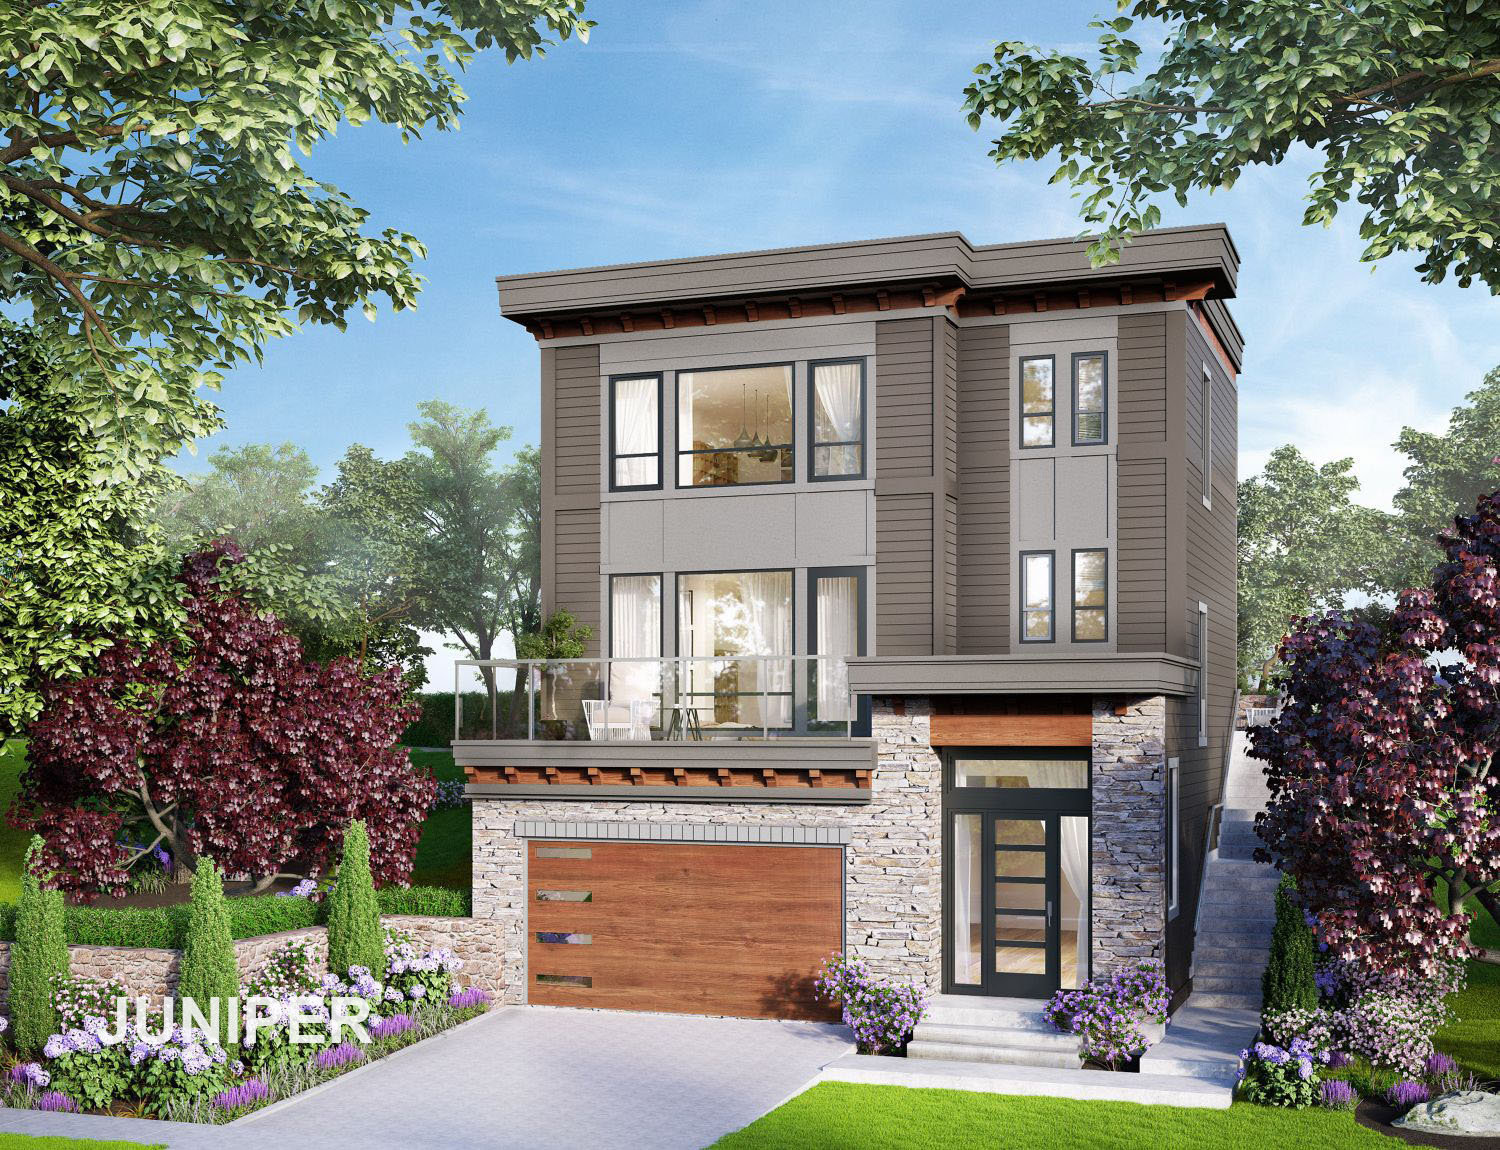 Timberlane - Algra Bros. Developments!